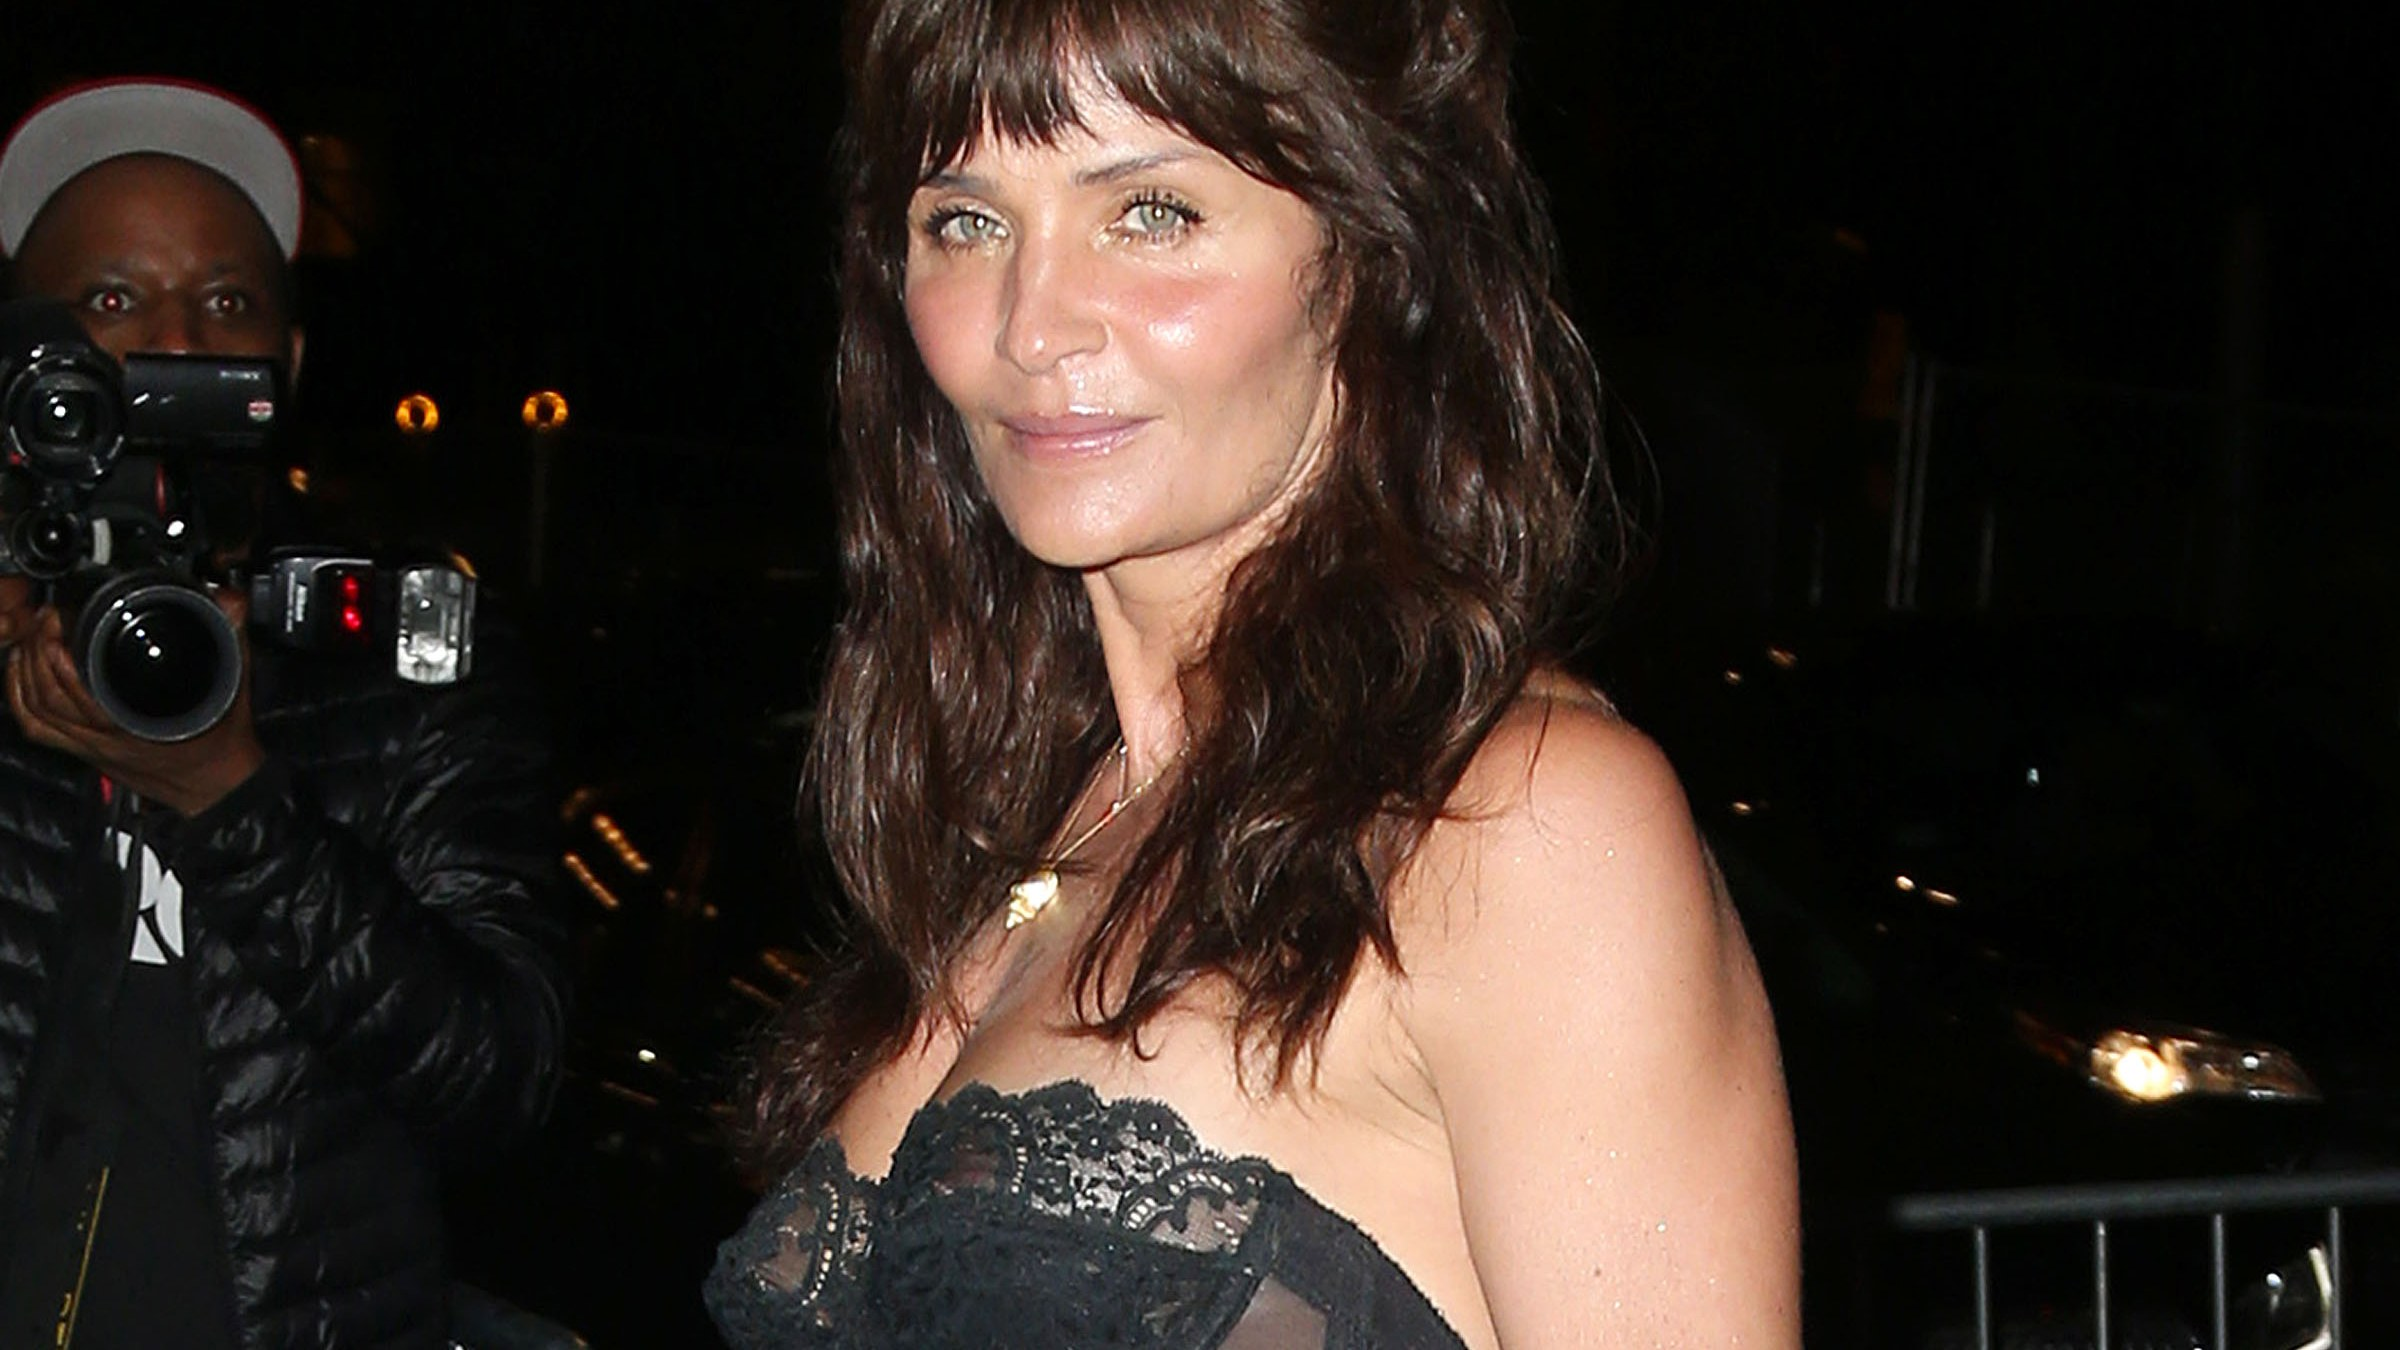 Helena Christensen After Party Pics 1